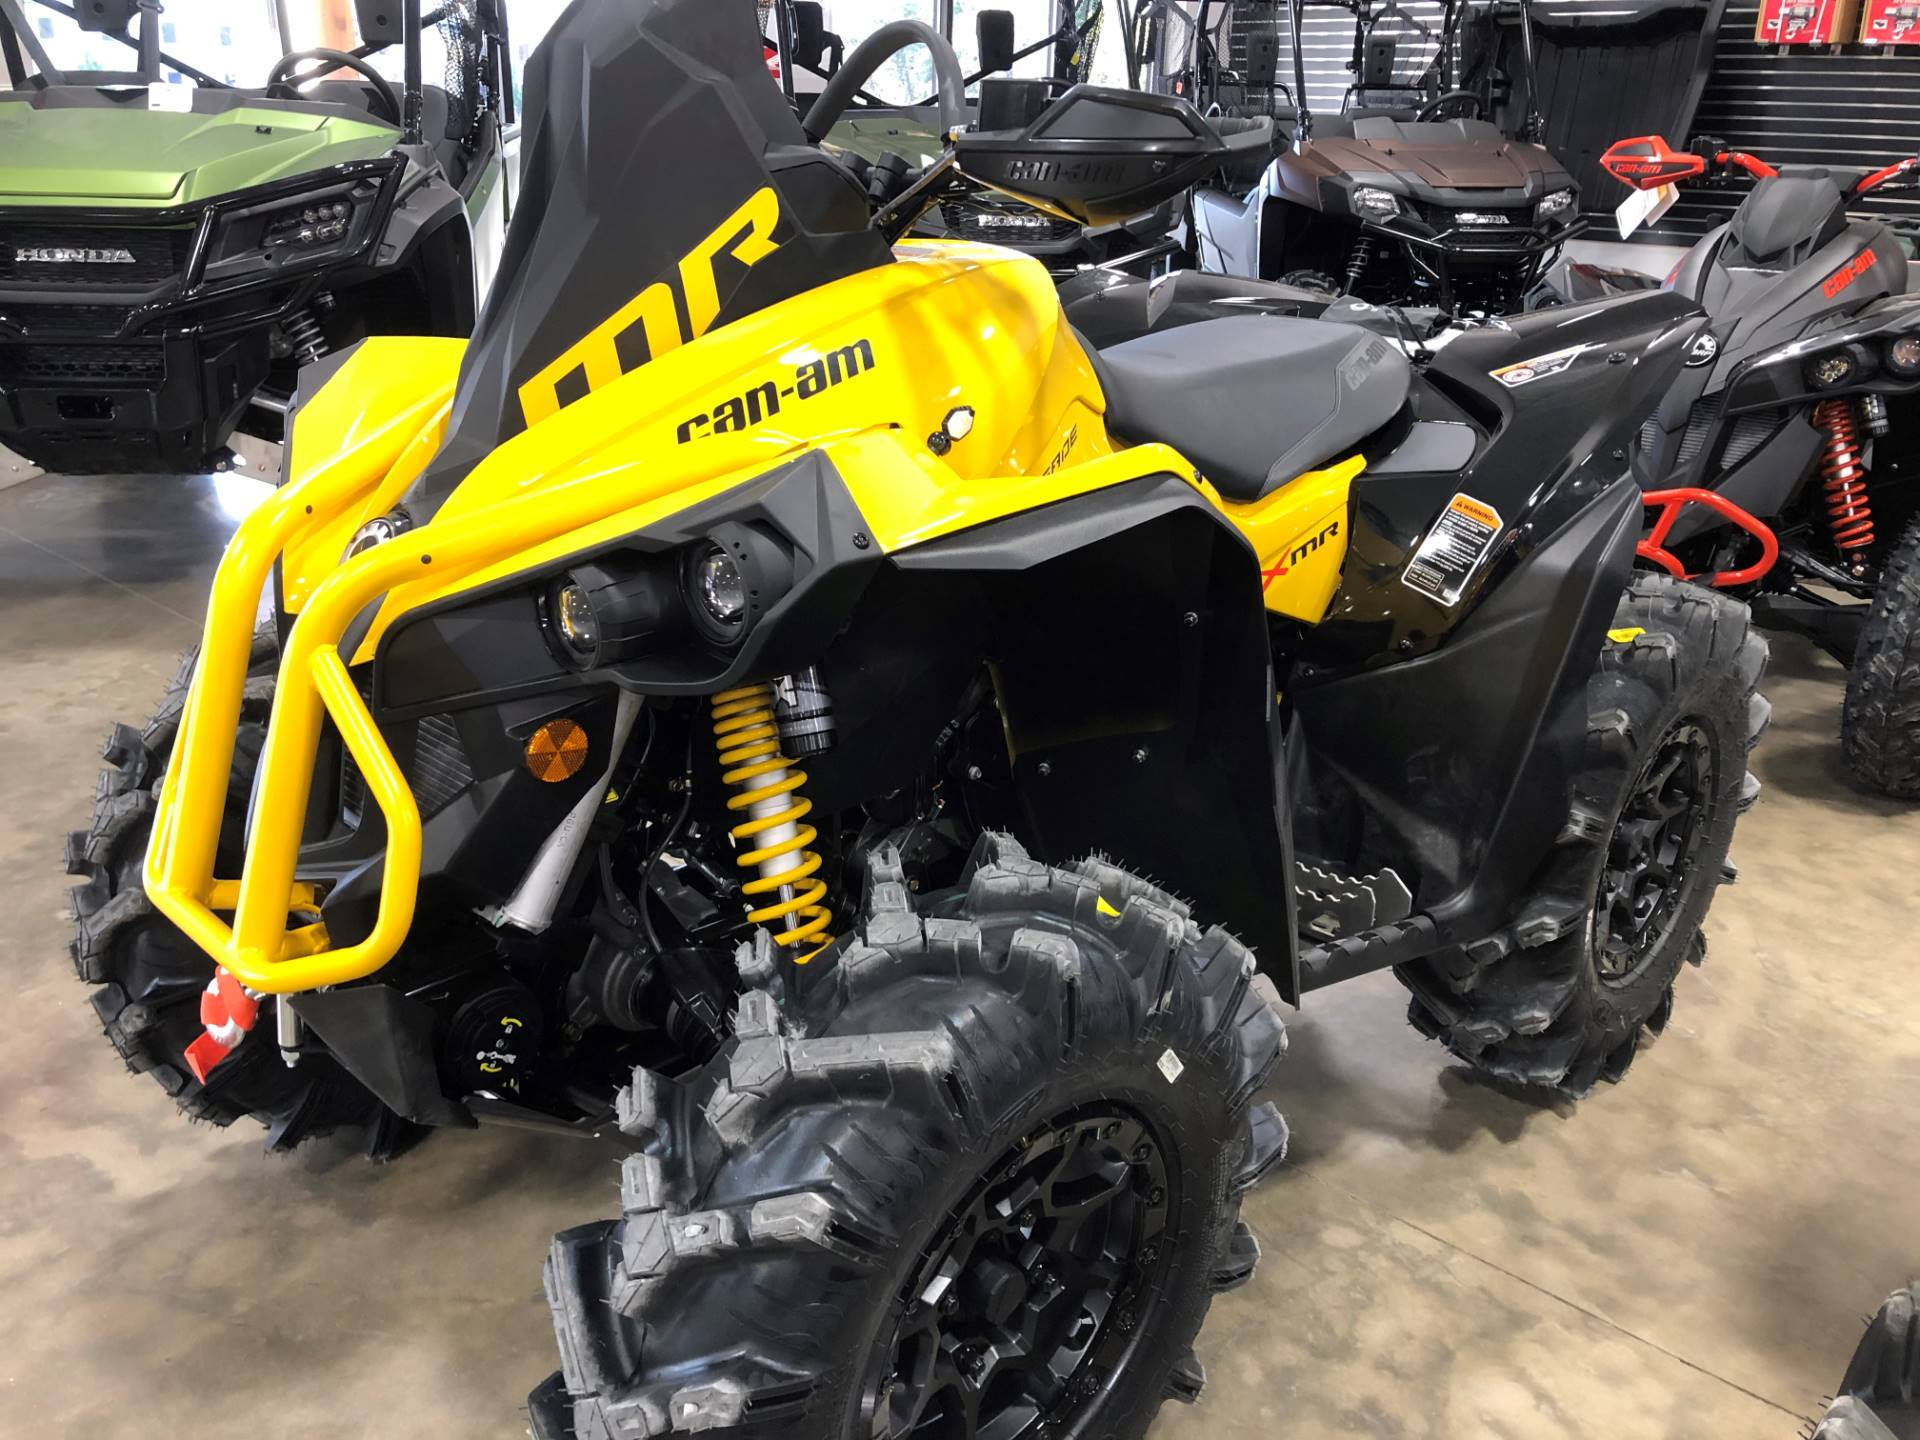 2021 Can-Am Renegade X MR 1000R with Visco-4Lok in Leland, Mississippi - Photo 1